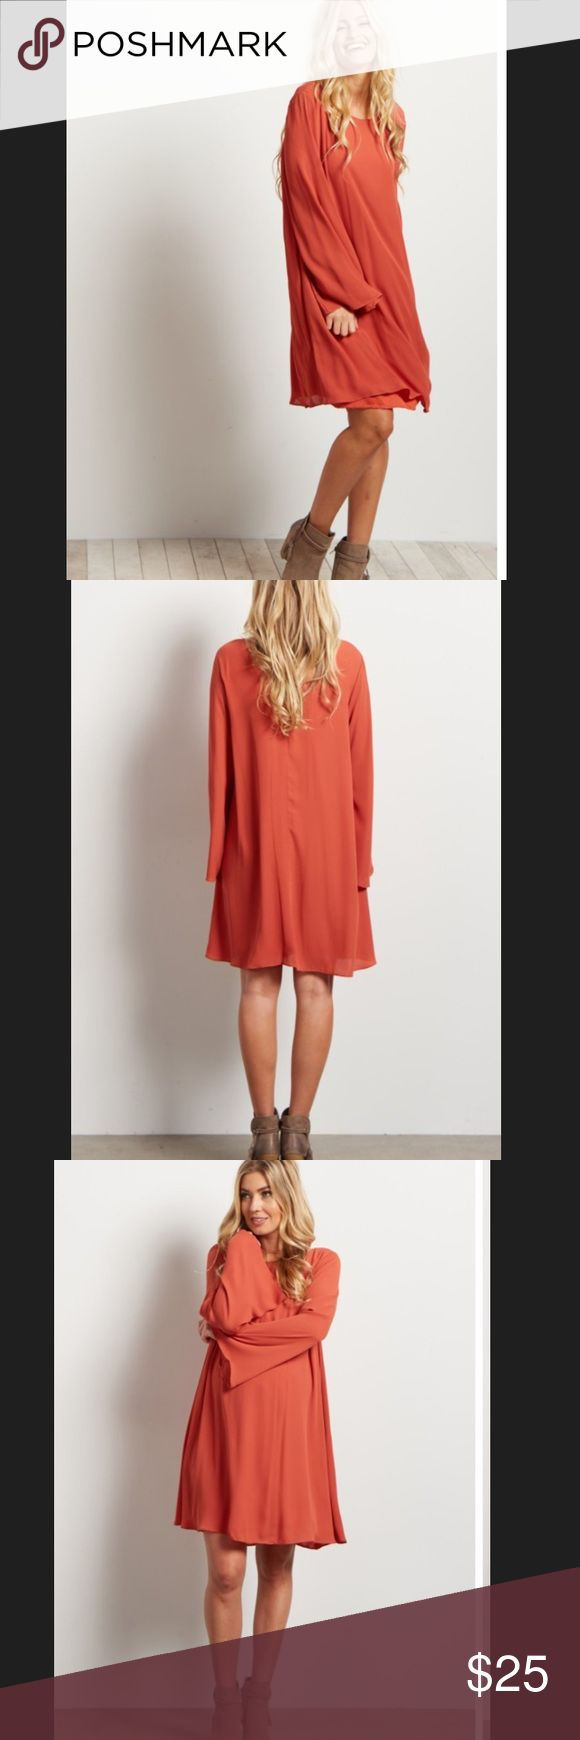 Best 25 maternity sleeved dresses ideas on pinterest maternity orange chiffon bell sleeve maternity dress ombrellifo Image collections